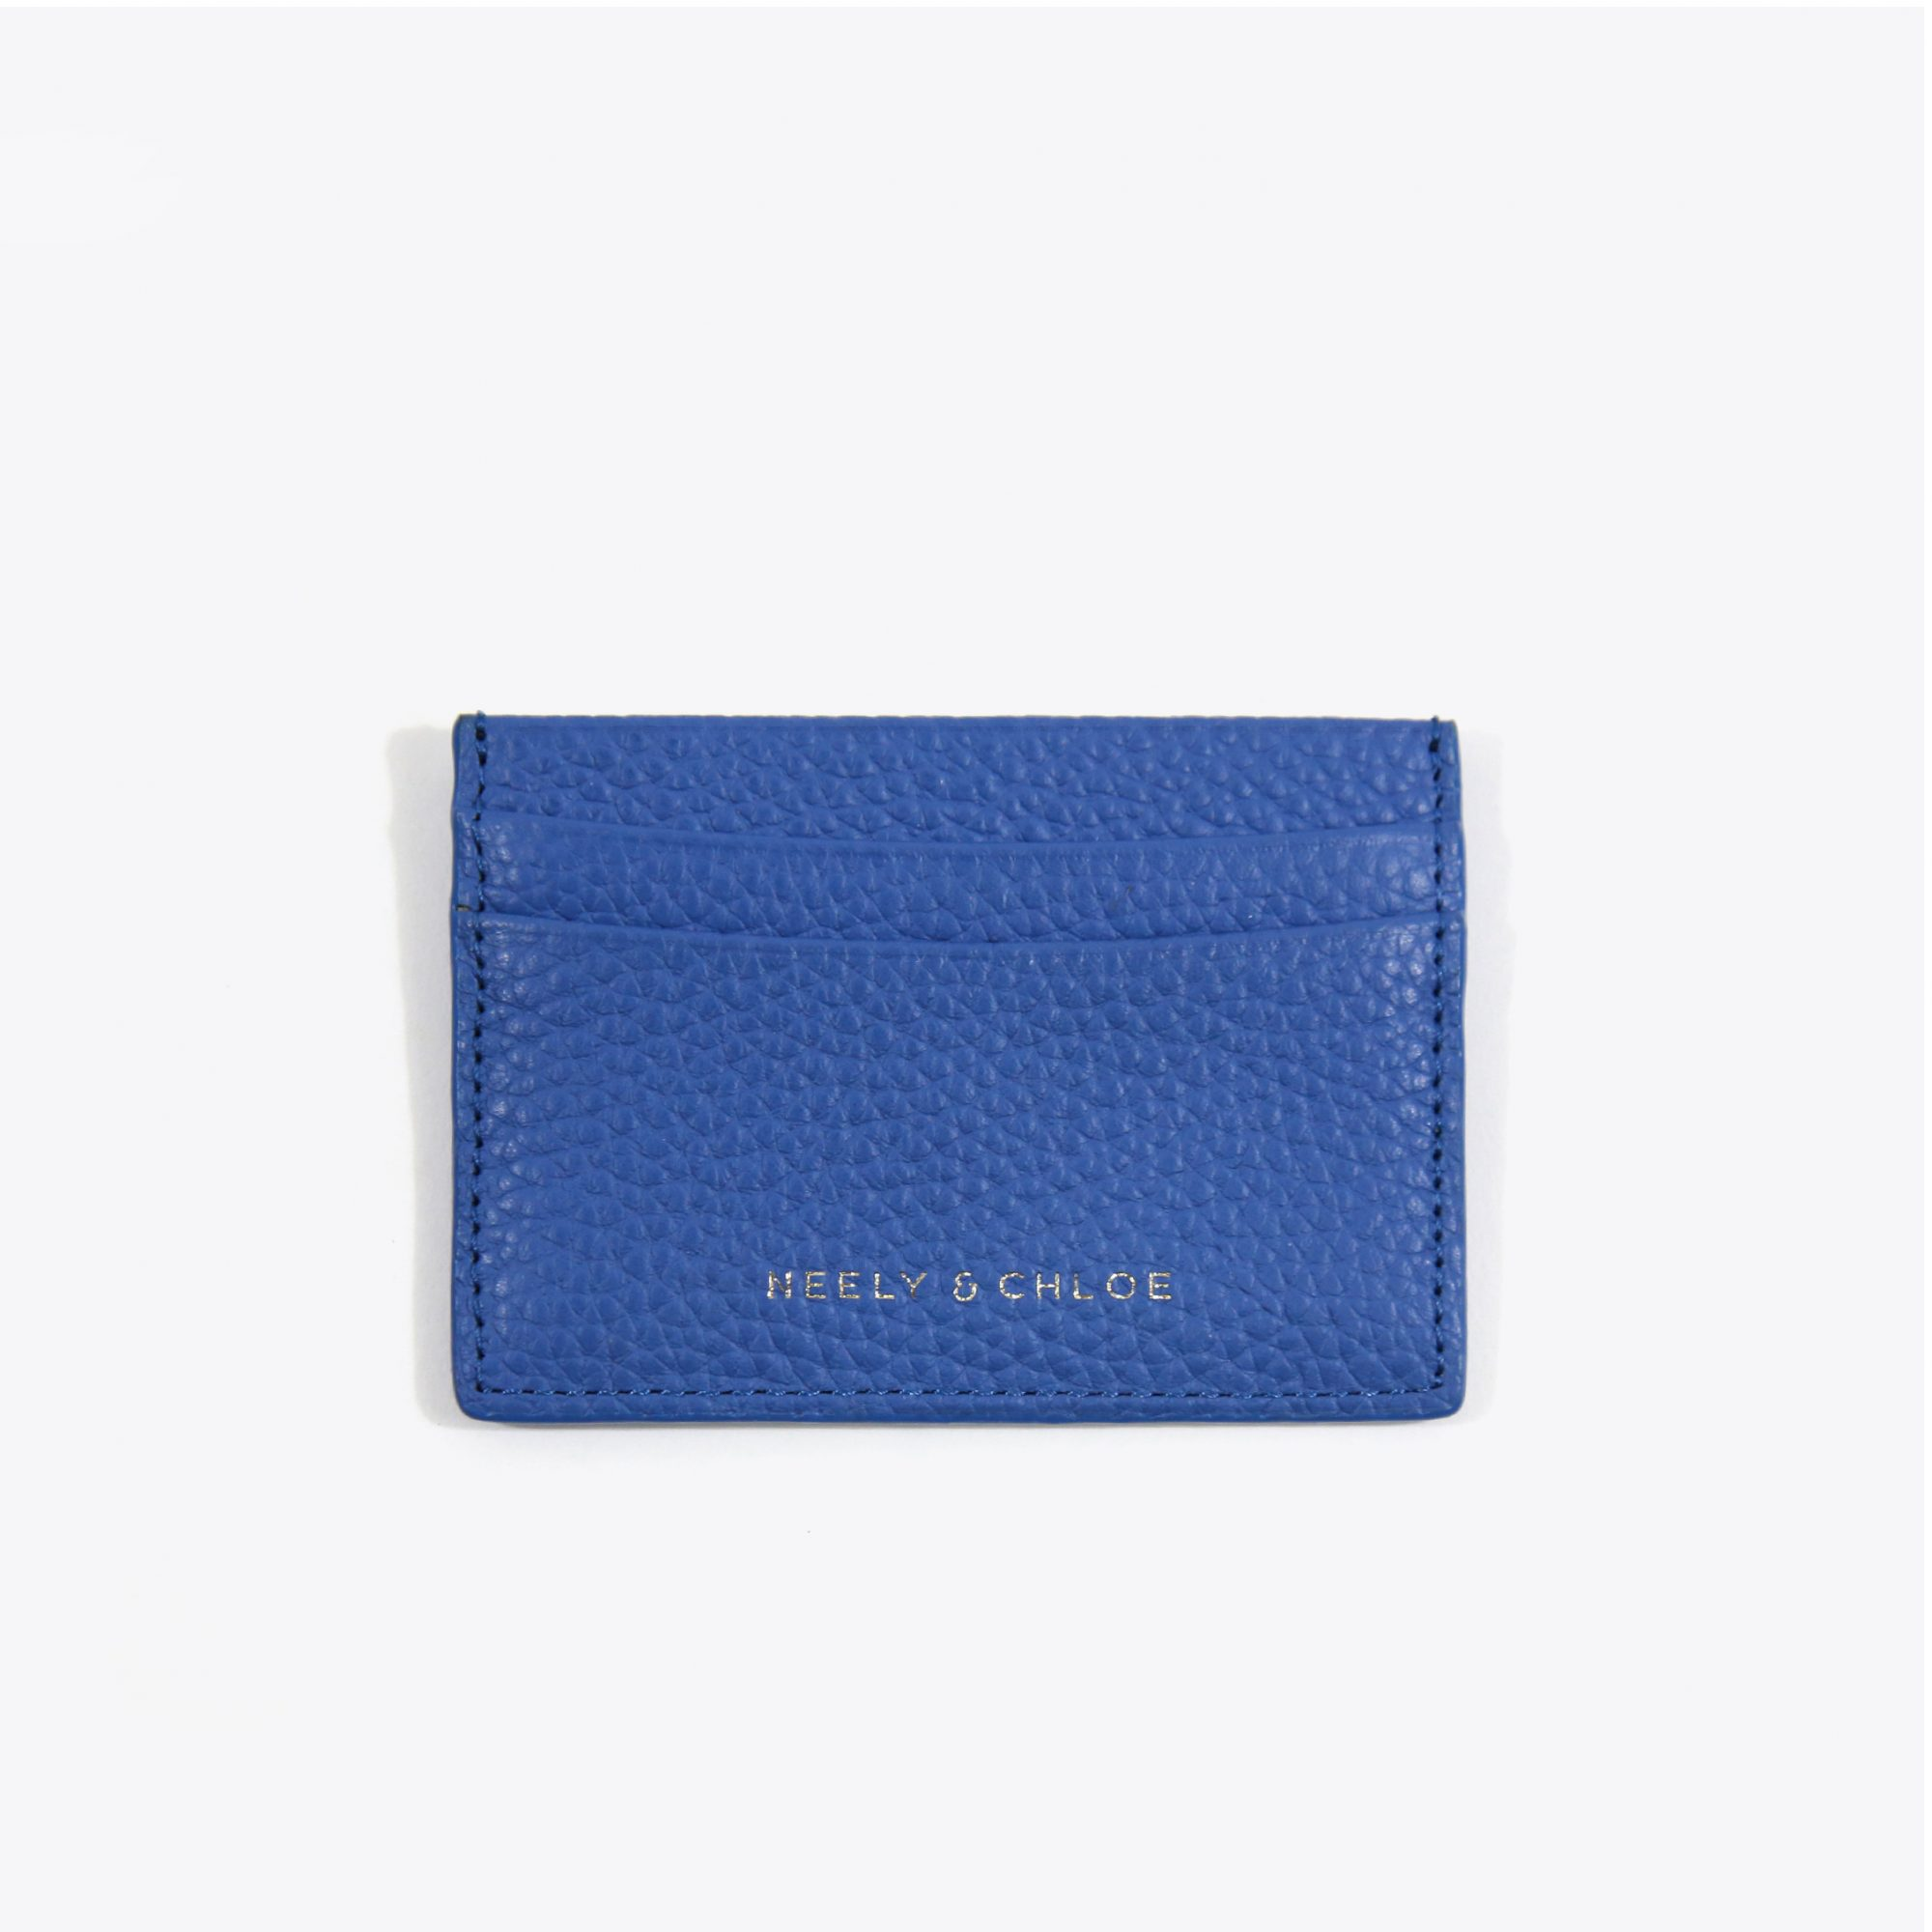 Christmas Gifts for Mom: Neely & Chloe flat card case wallet